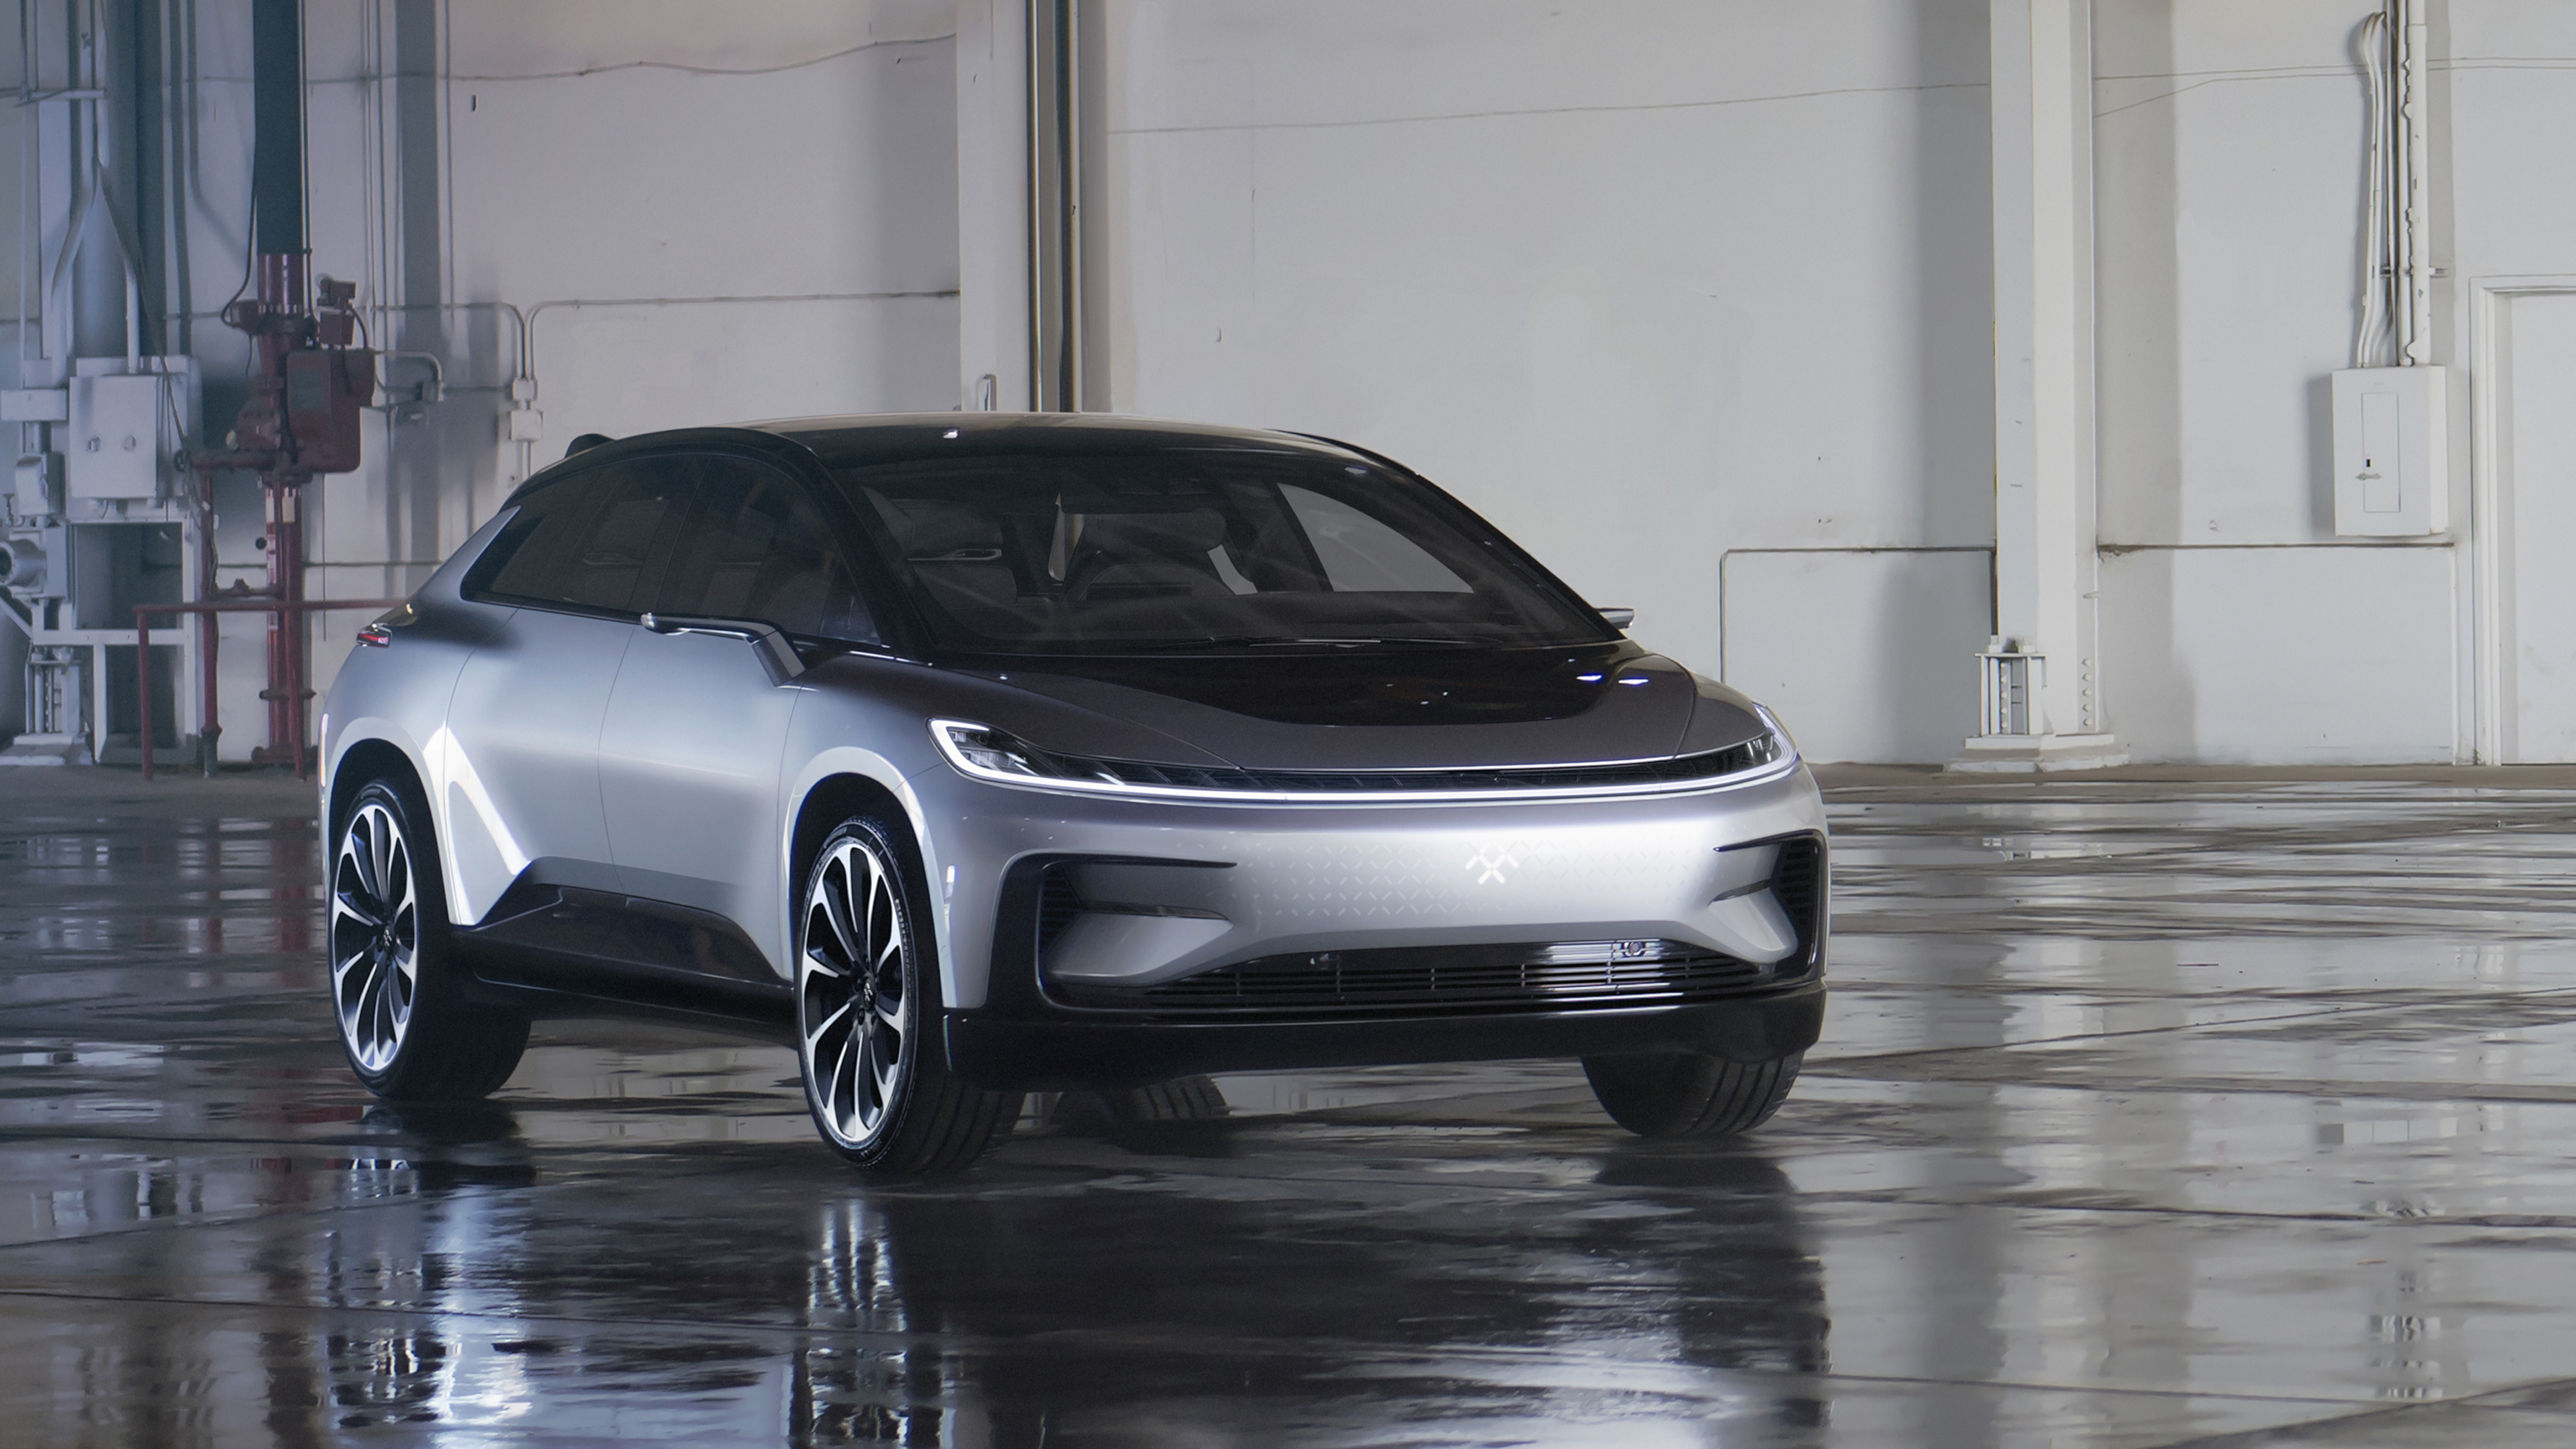 faraday future s first car the ff91 is here   the verge